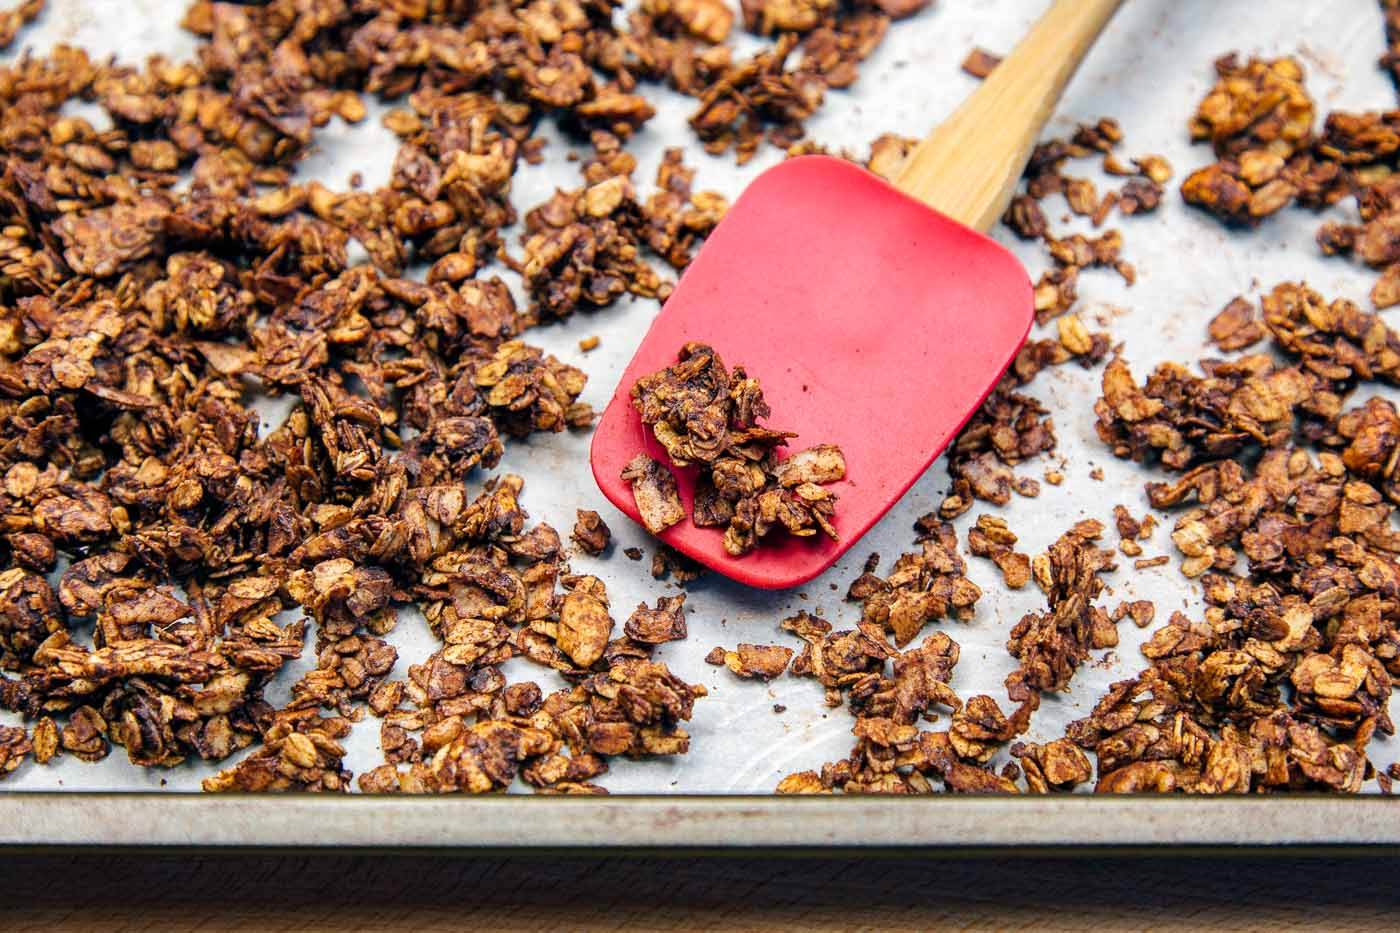 Coconut chocolate granola on a baking sheet